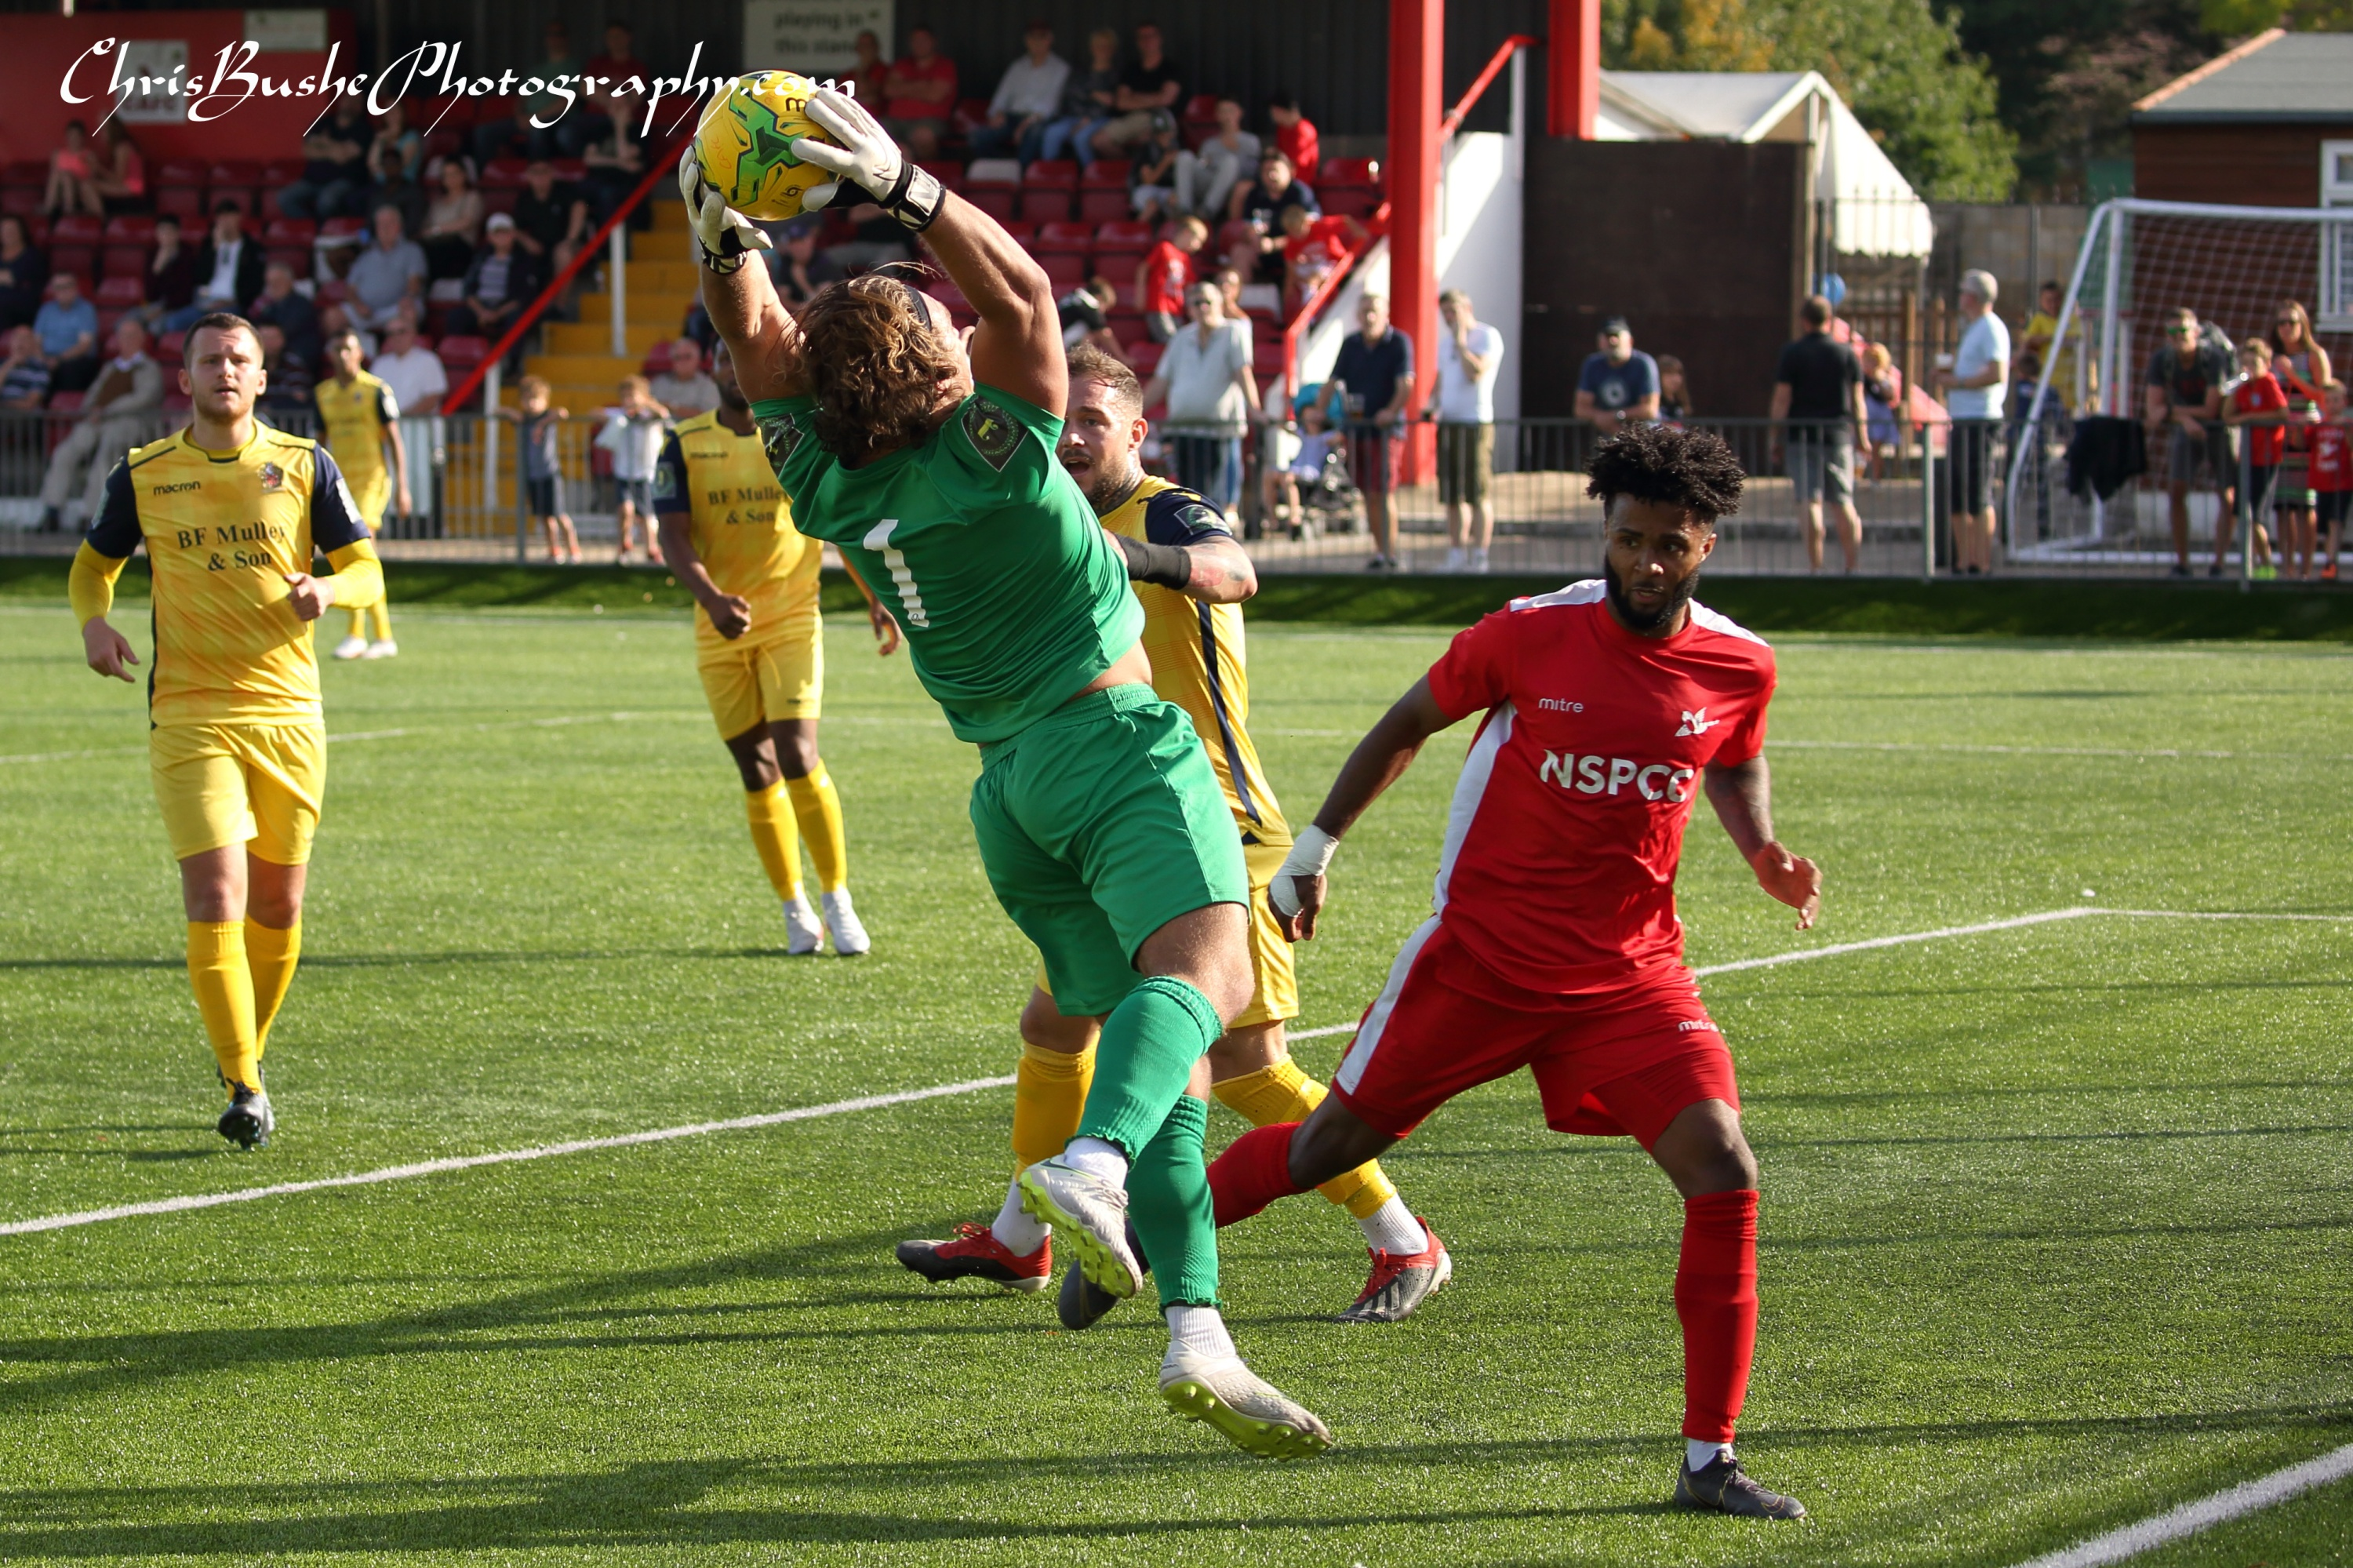 Joseph Right hornchurch keeper keeps Ricky Korboa out agaain